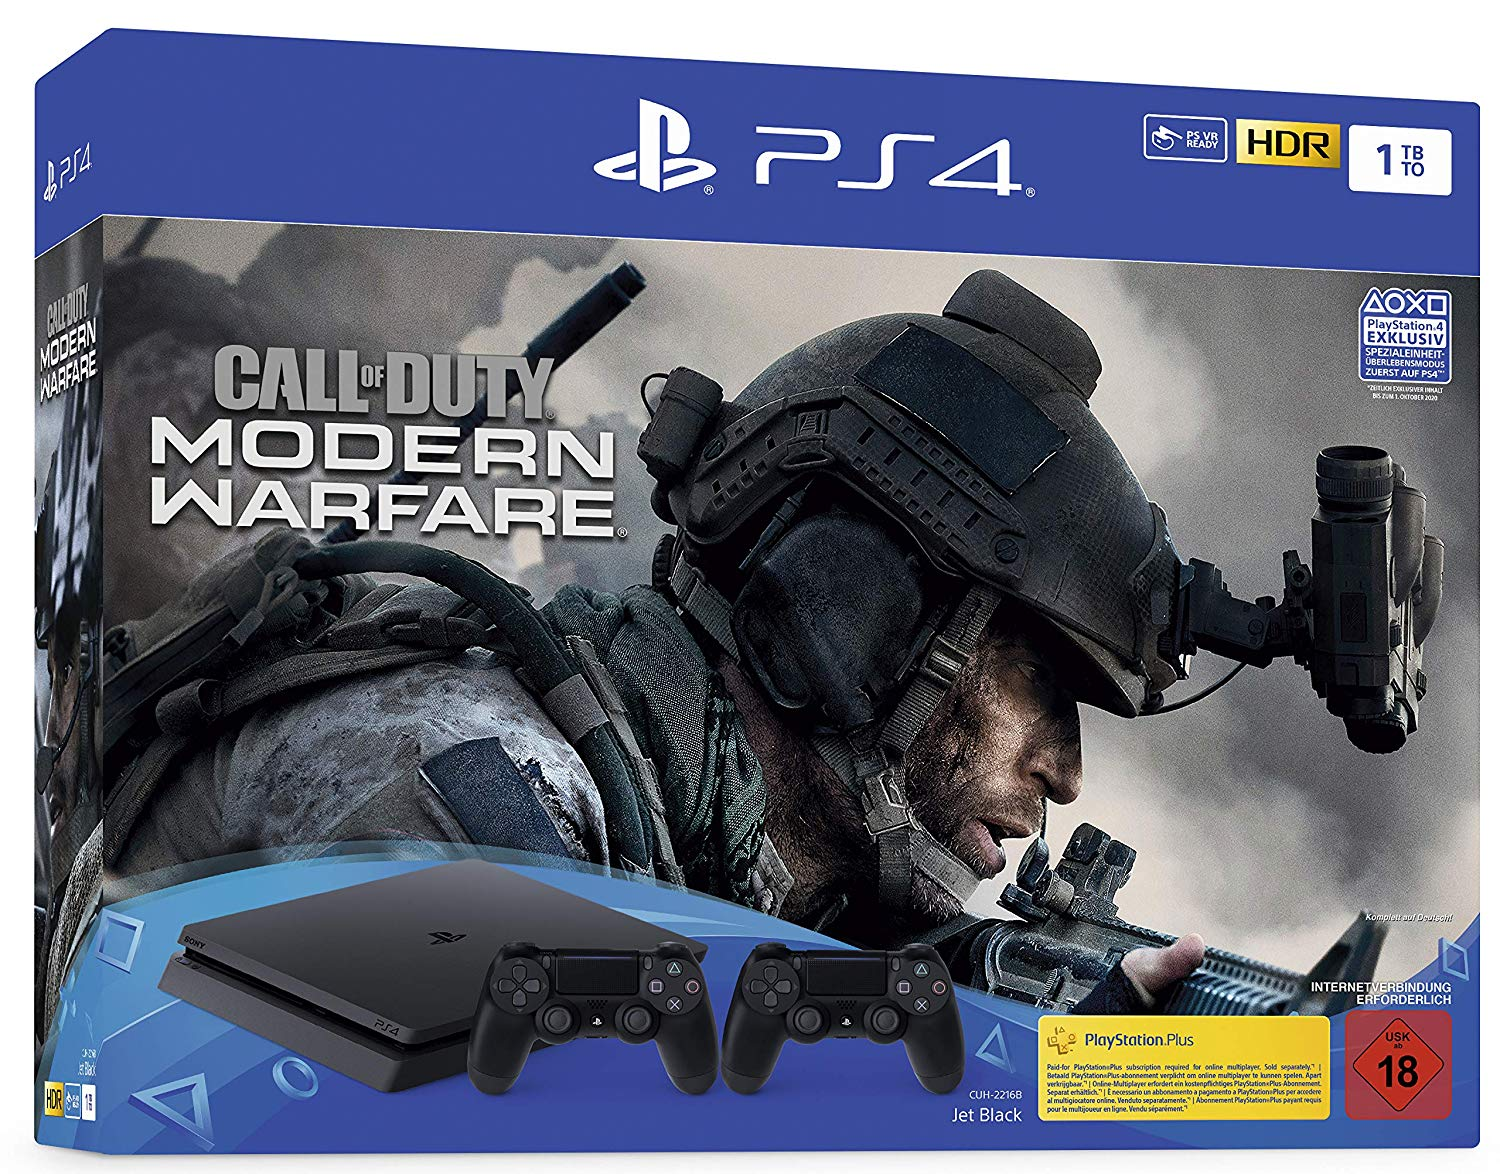 PS4 Angebote amazon